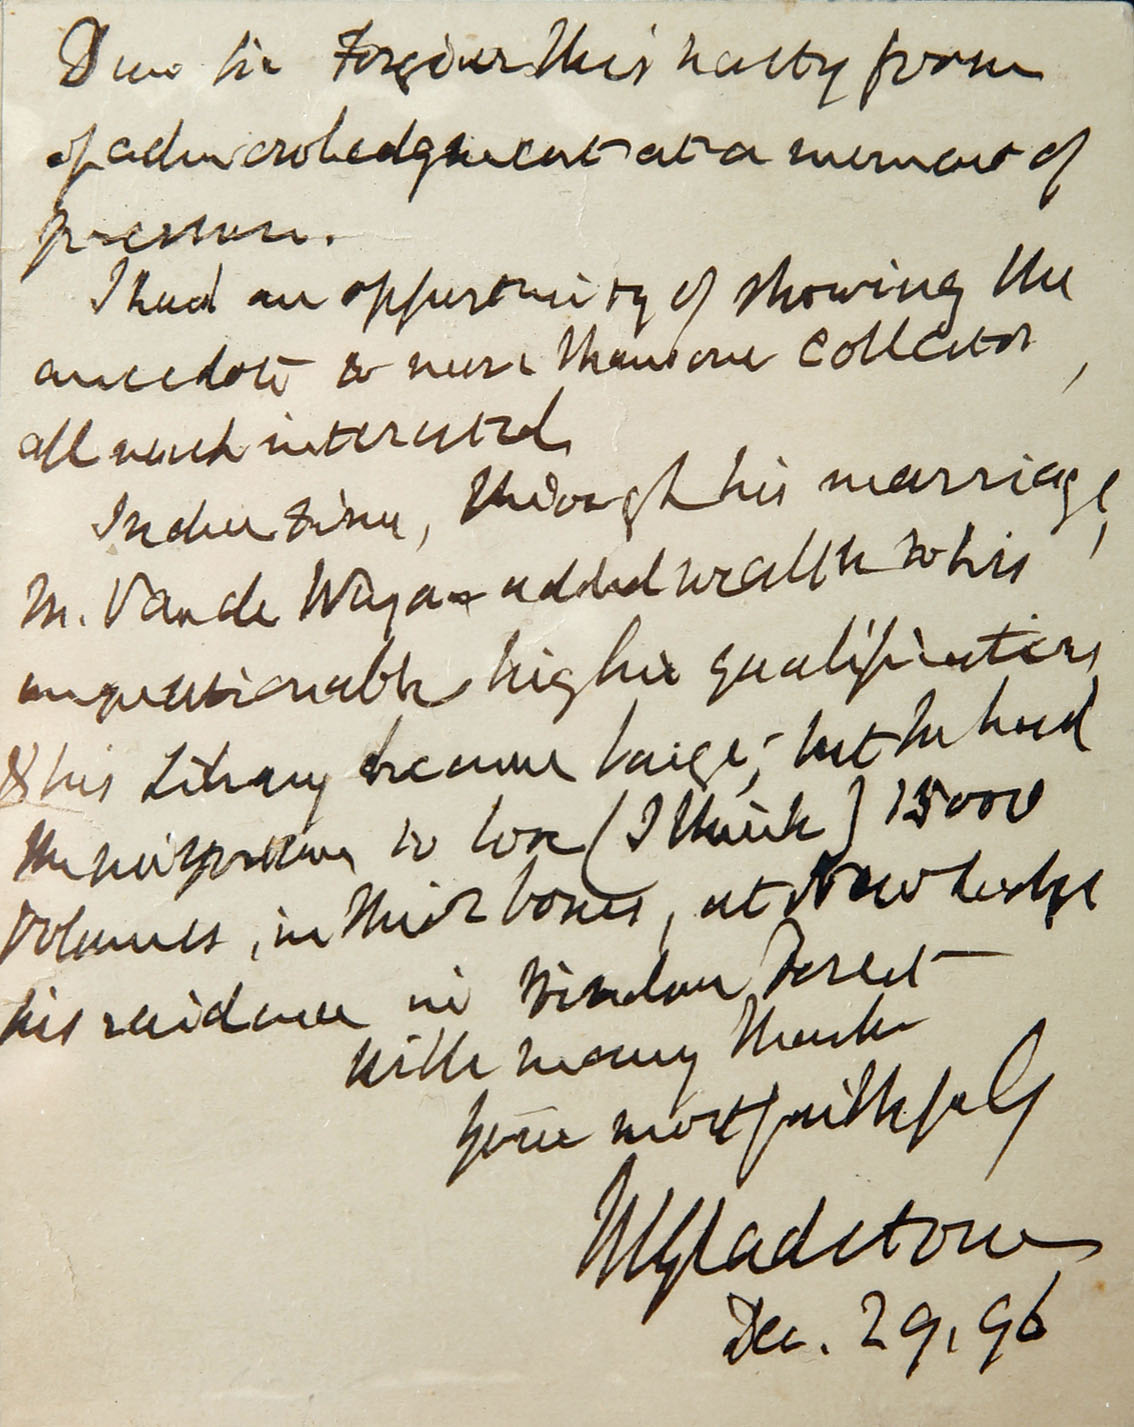 William Gladstone, autograph letter signed, one page, December 29, 1896 A personal letter to General